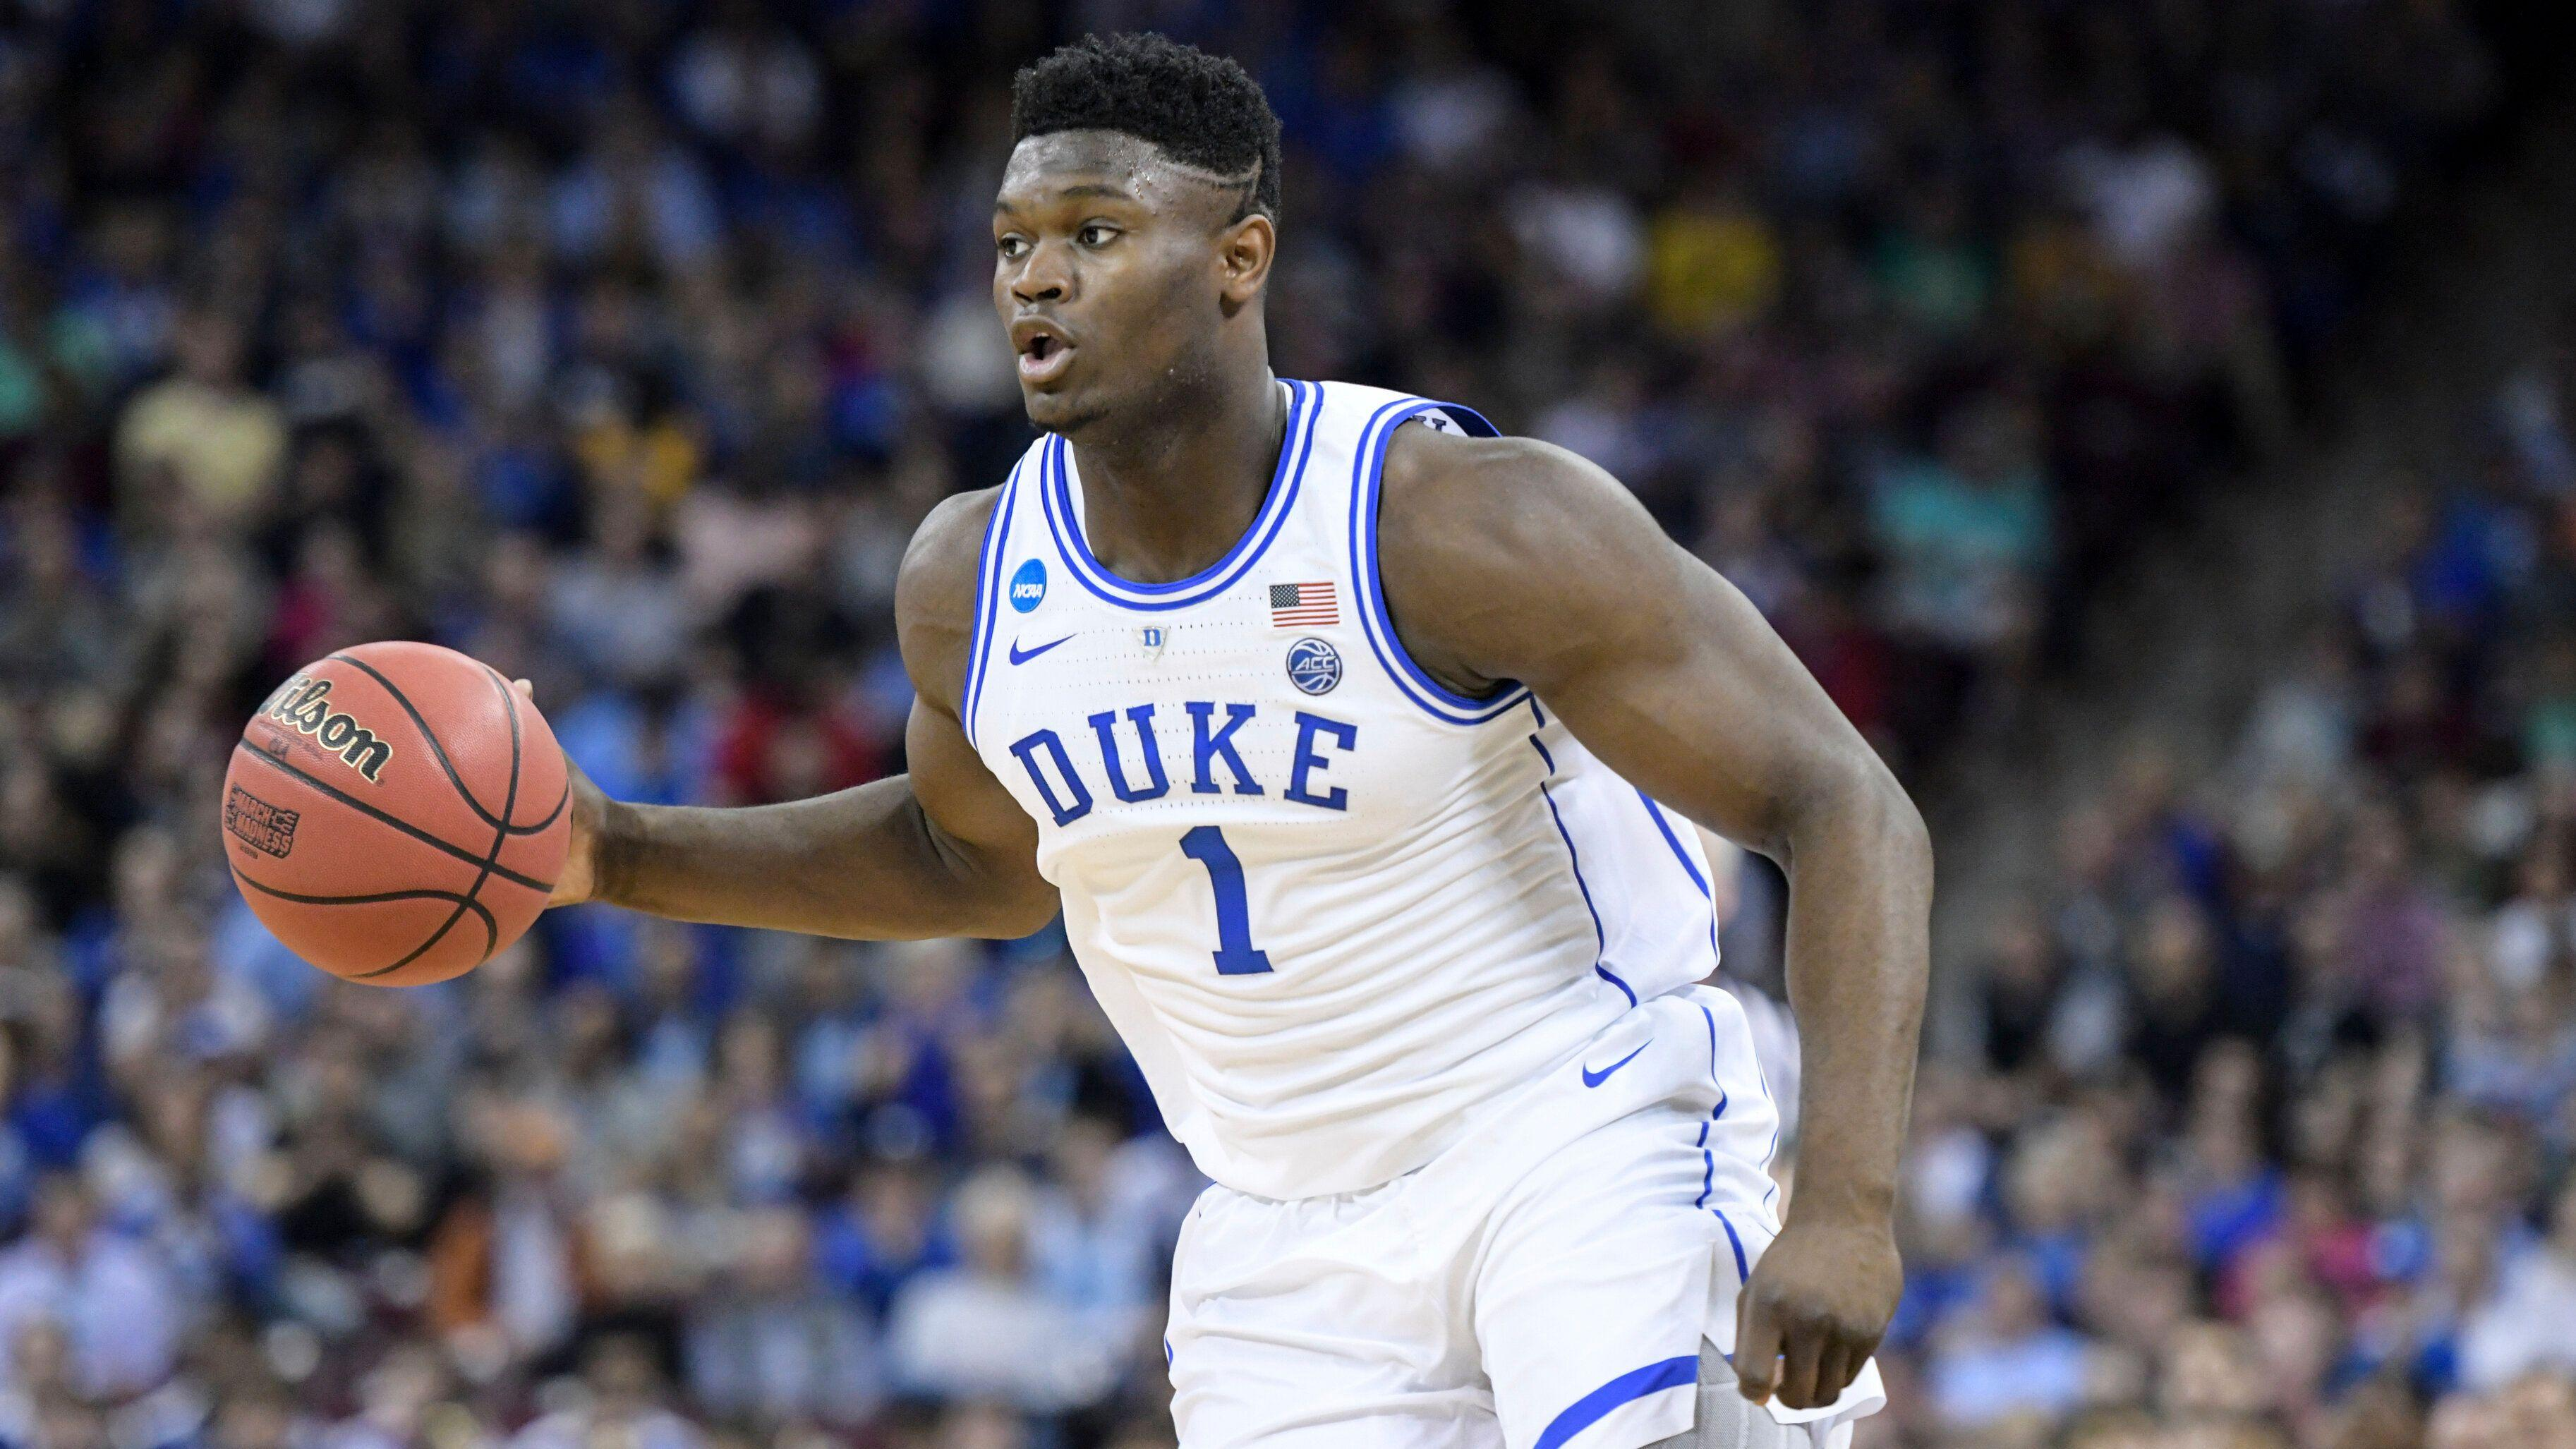 2845e0be47 Pelicans win NBA draft lottery, sweepstakes for Duke superstar Zion  Williamson